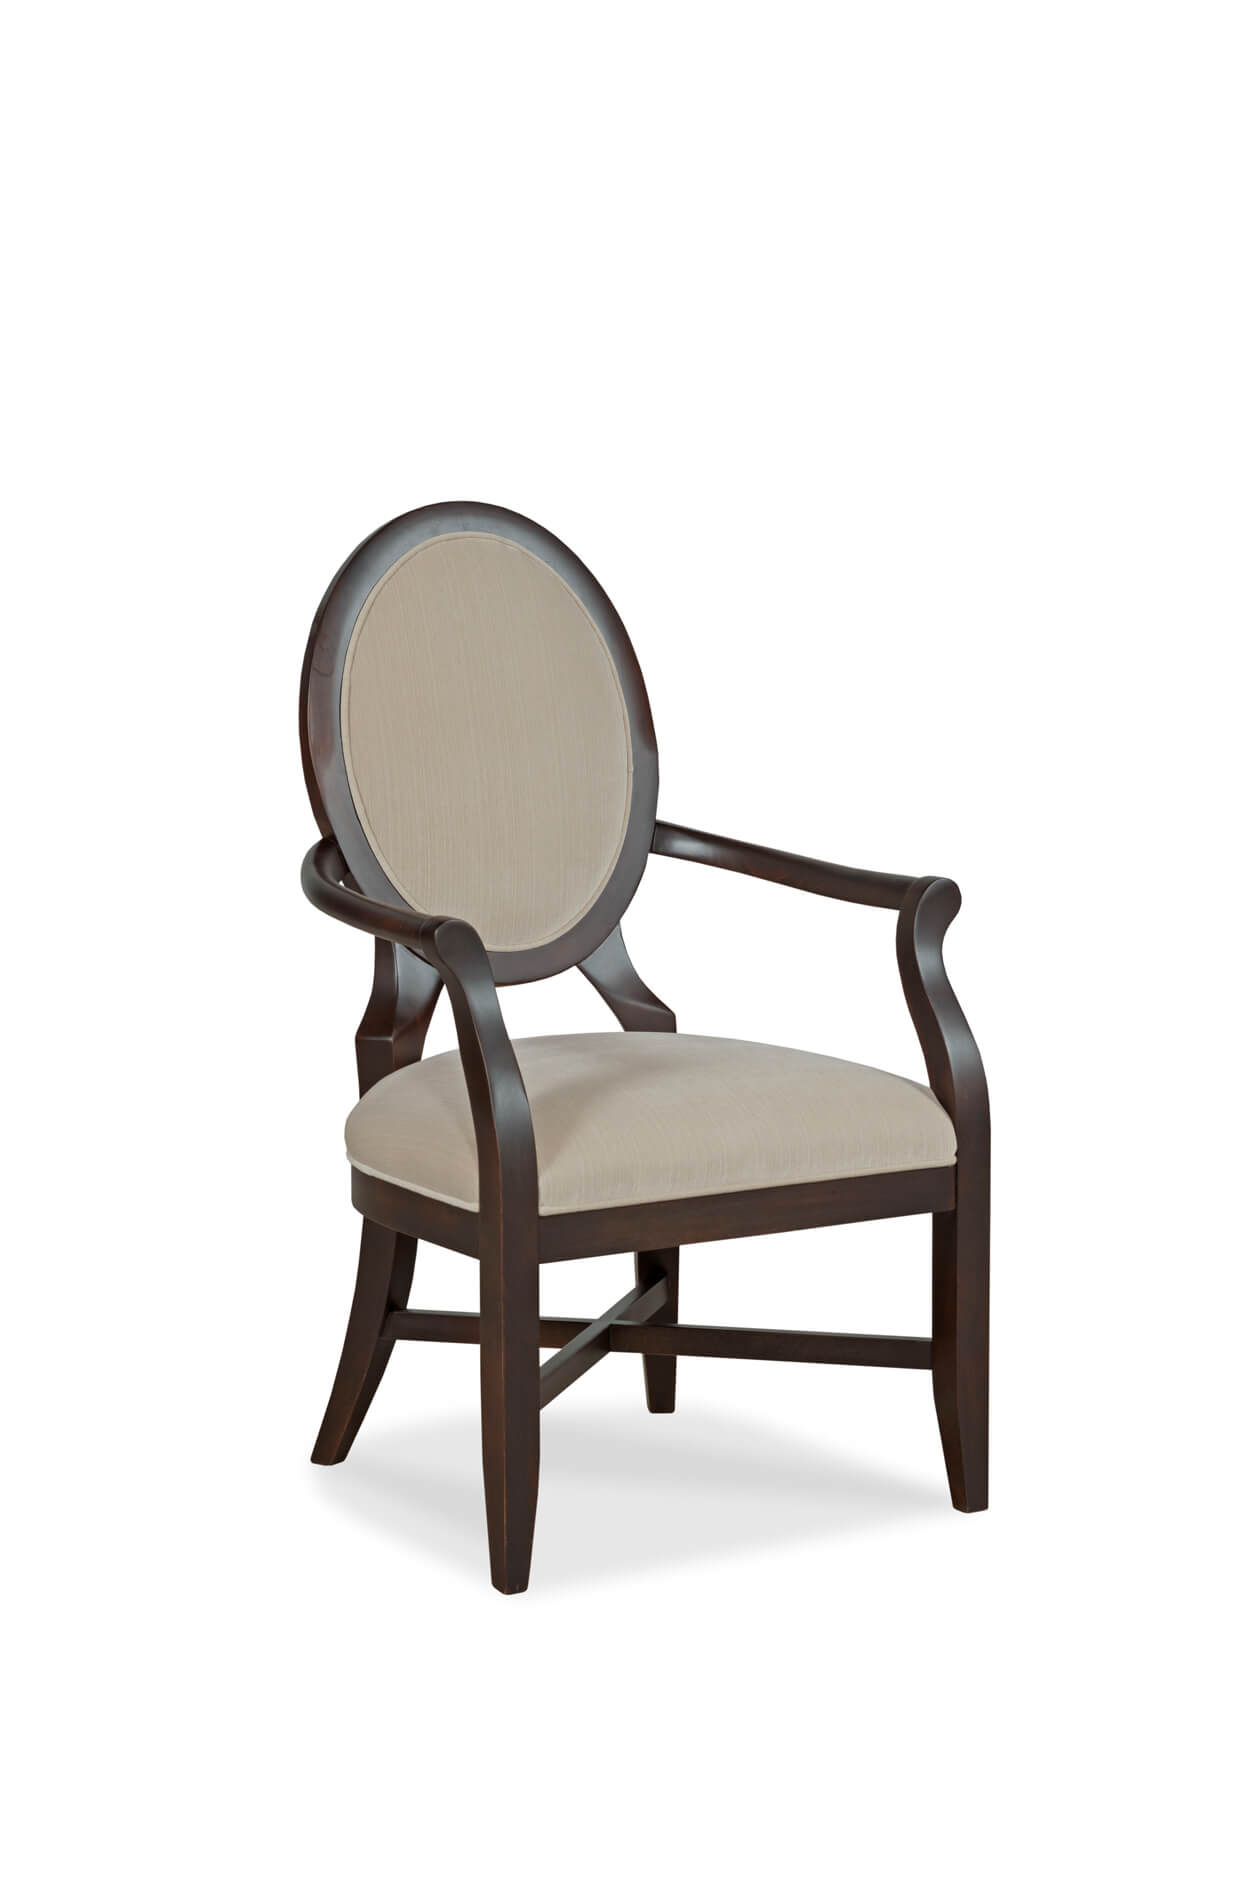 Fairfield's Marlin Upholstered Dining Arm Chair